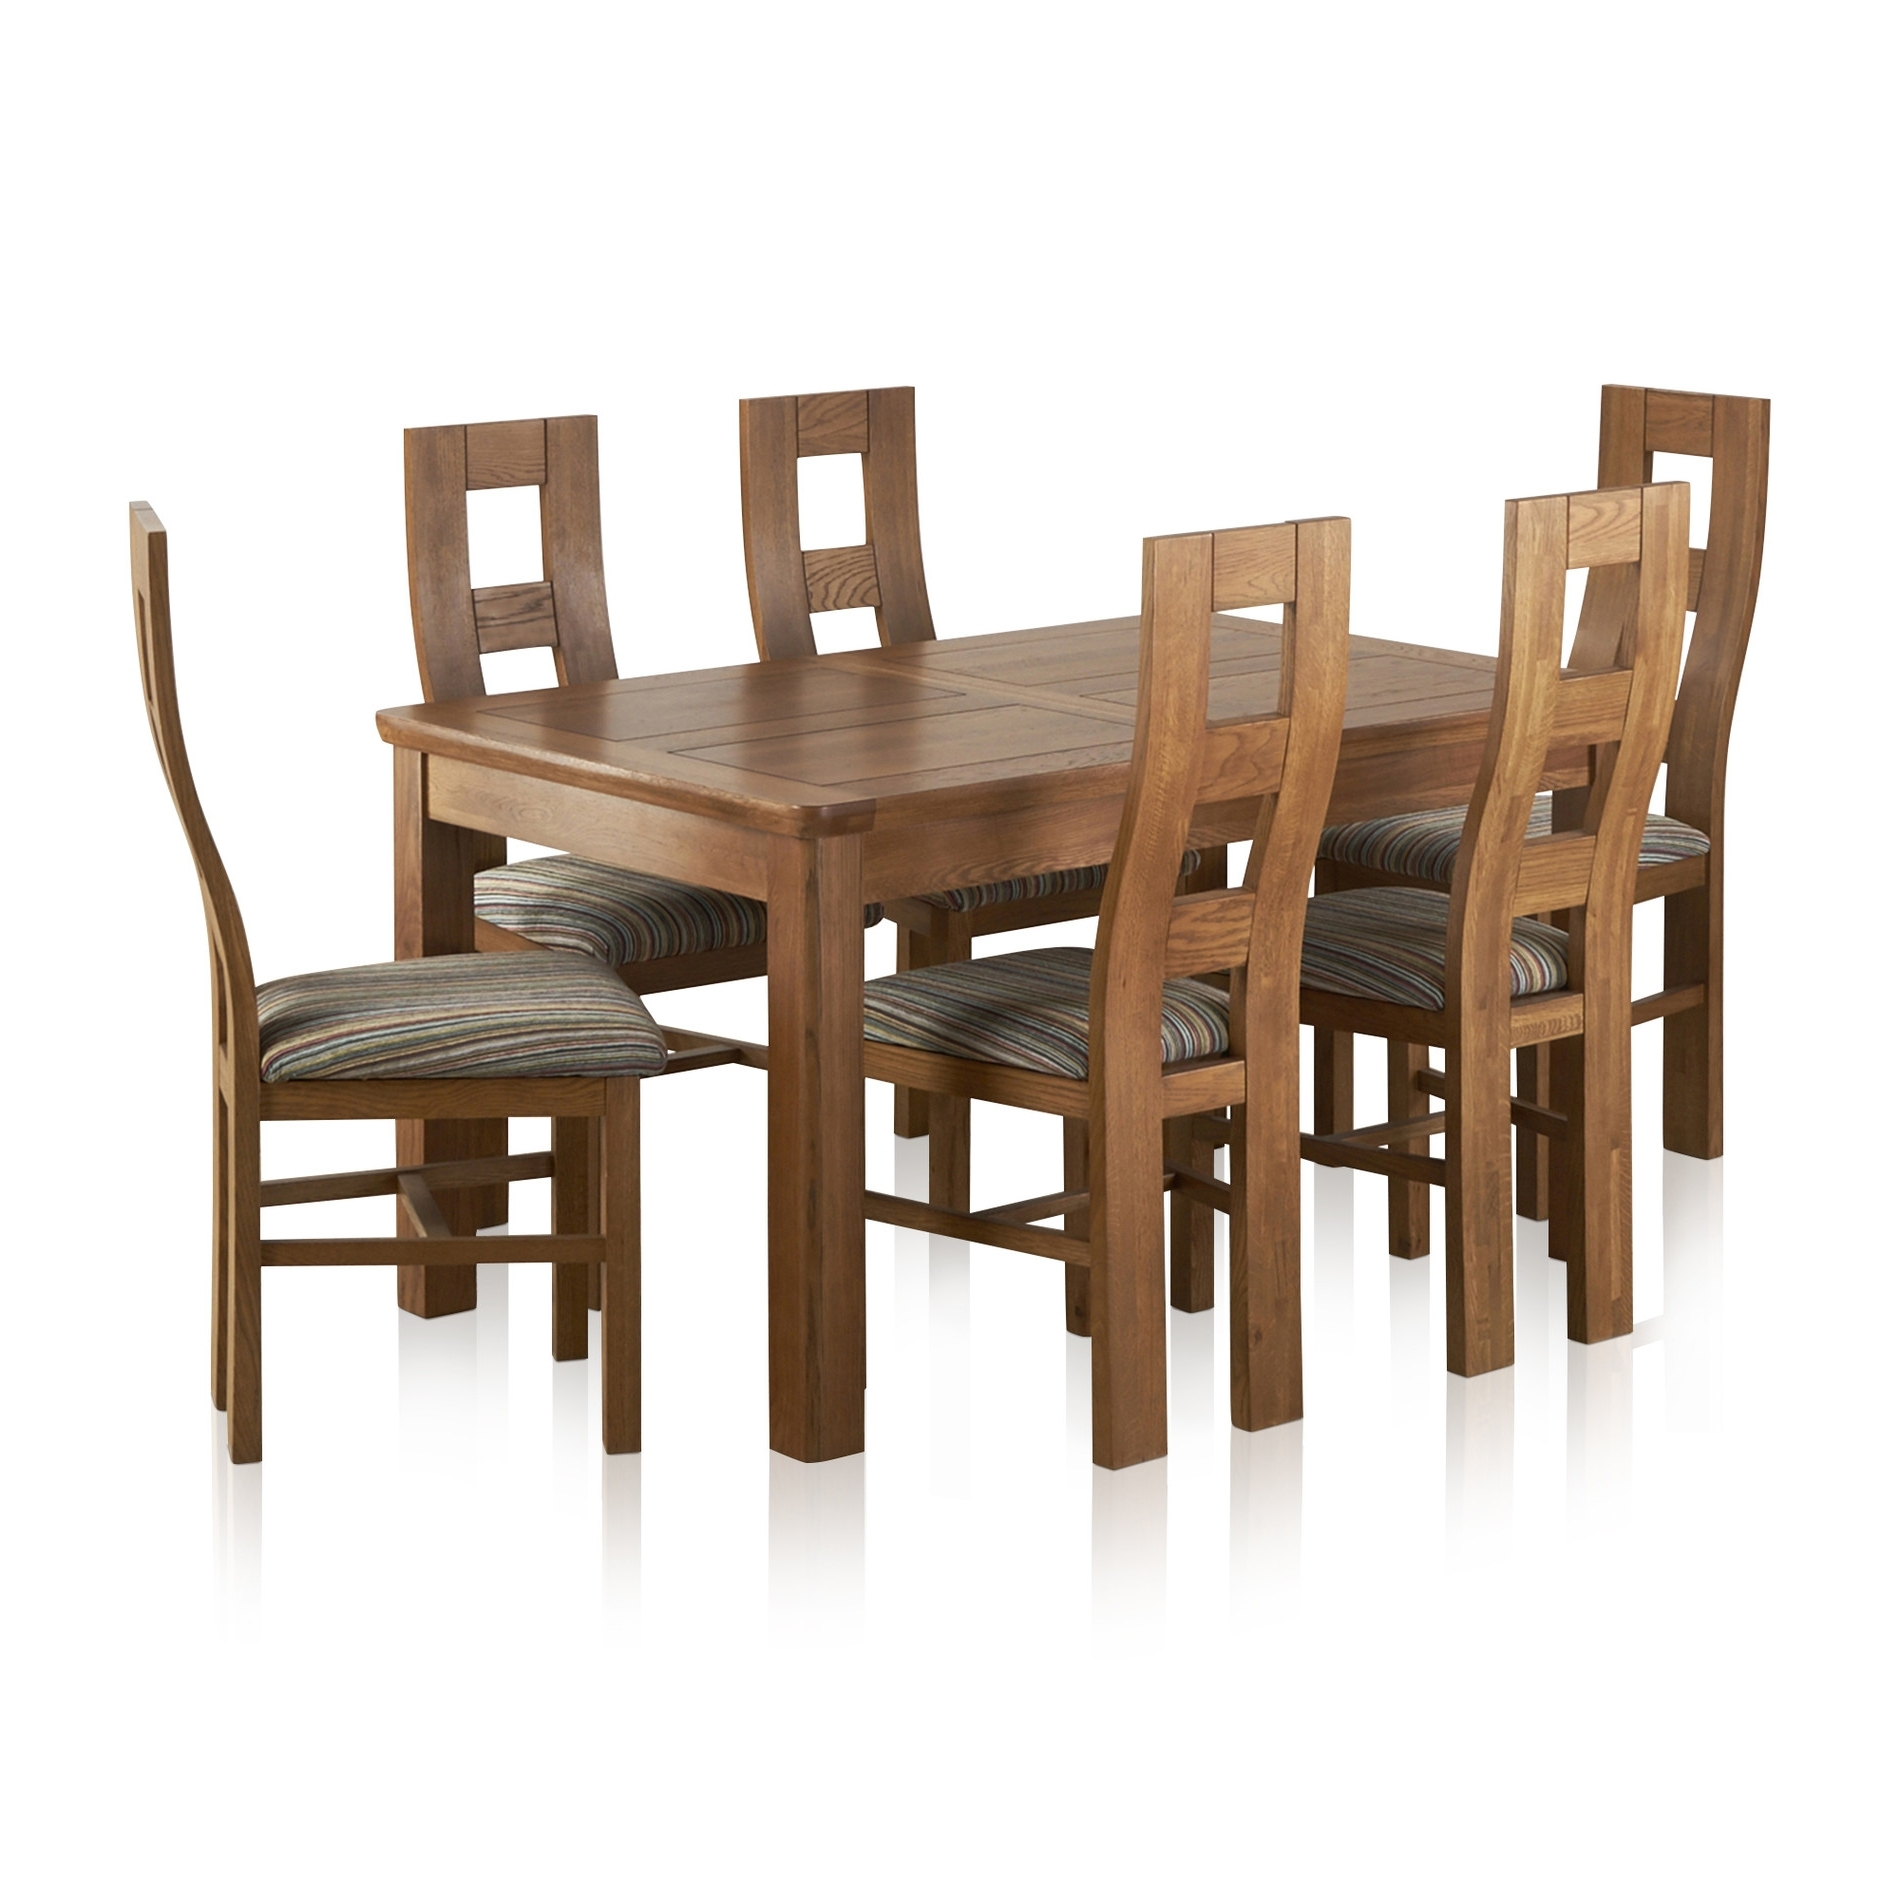 Famous Extendable Dining Table And 6 Chairs With Orrick Extending Dining Set In Rustic Oak: Table + 6 Beige Chairs (View 16 of 25)